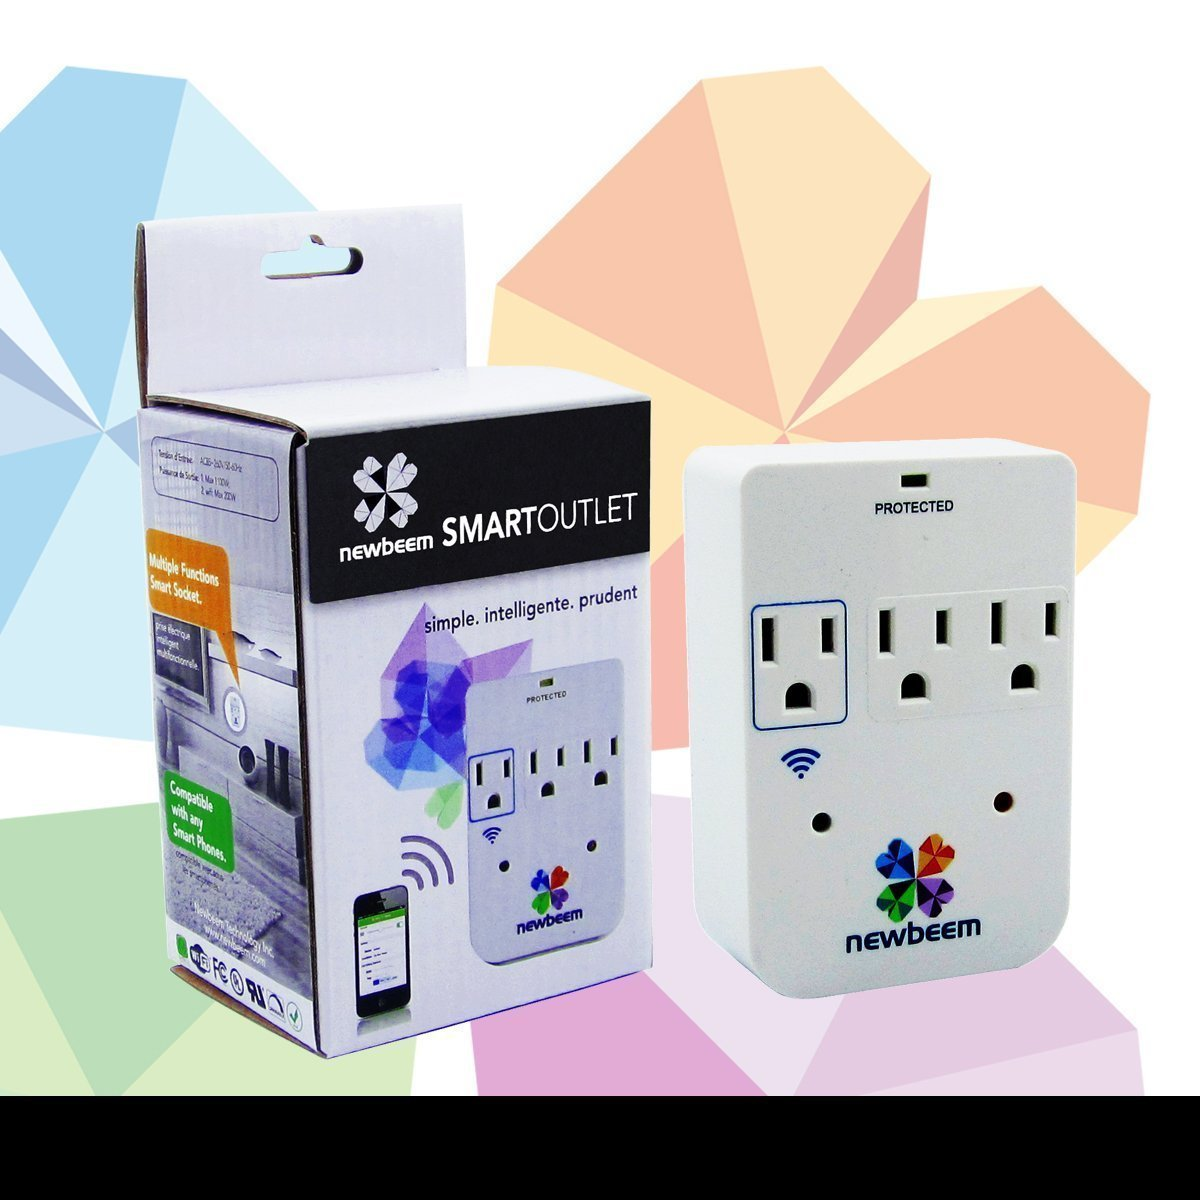 Smart Wi-Fi Dimmer, Control lights from your cell phone, Smart Outlet, Surge Protesmart dimmer,smart outlet,smart socket,wi-fi dimmer,wi-fi outlet,wi-fi socket,smart dimmer switch,